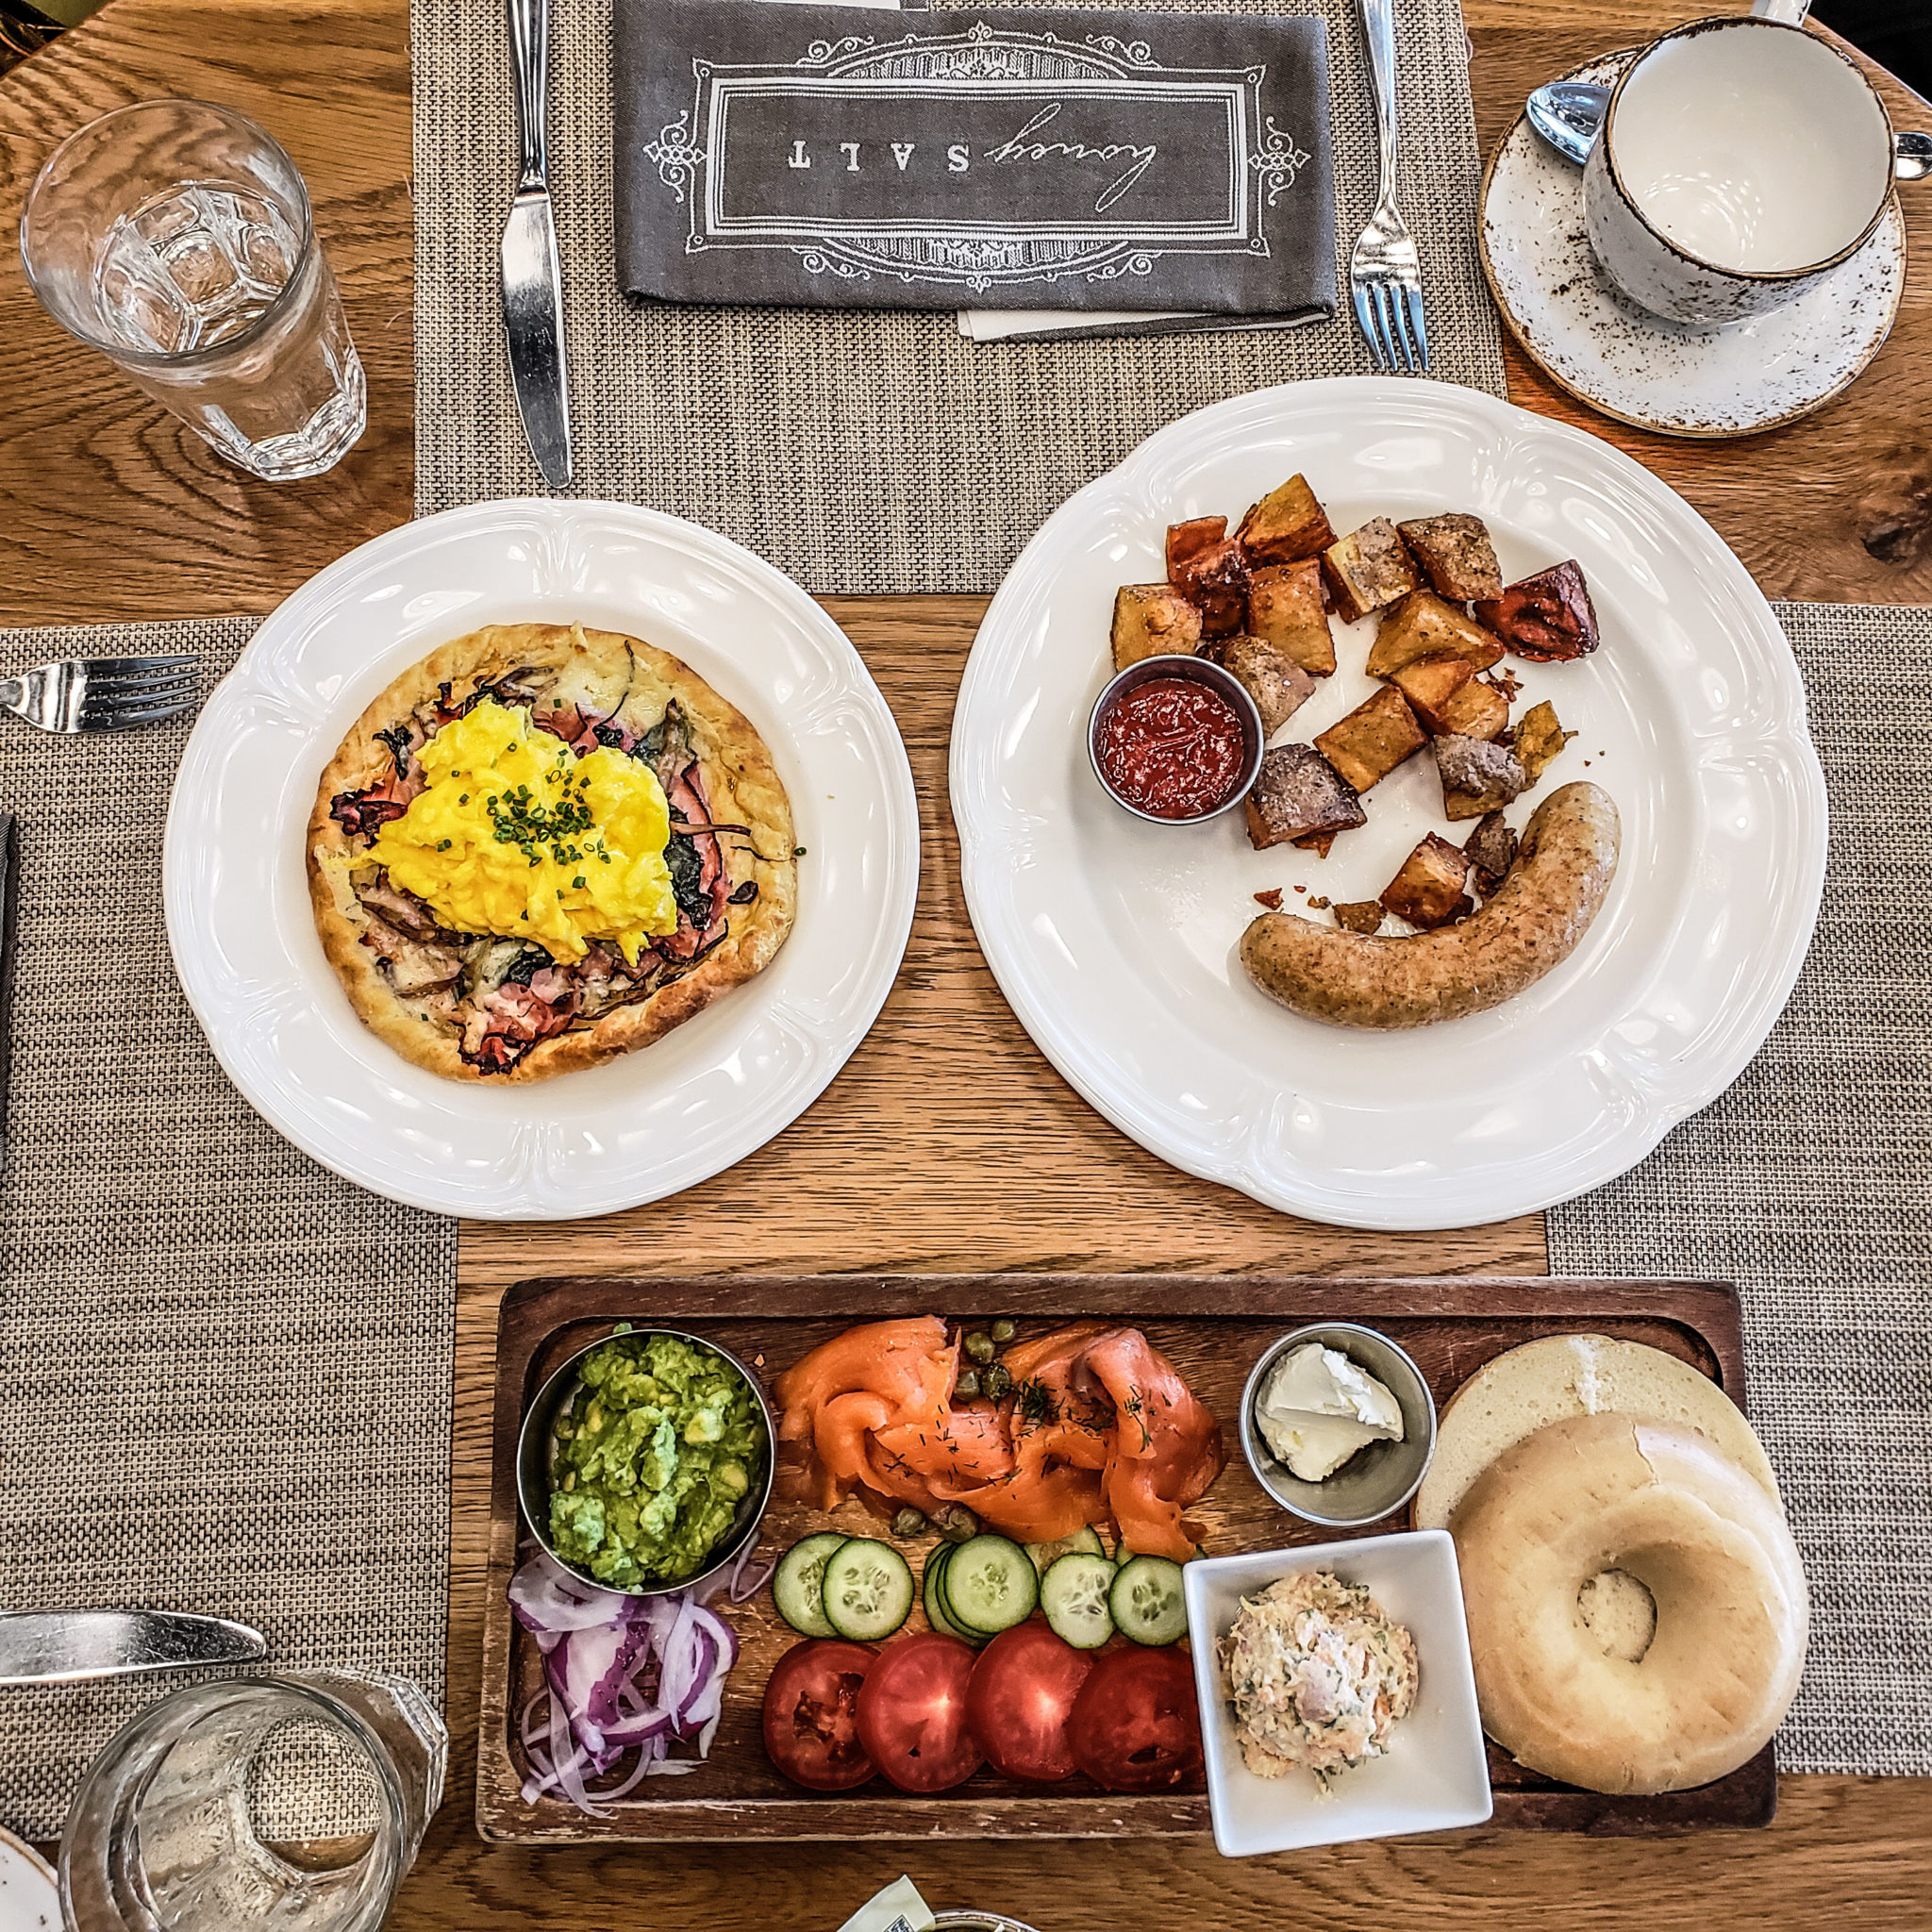 Vancouver - Canada - British Columbia - Parq Hotel - Honey Salt - Brunch - Flat lay